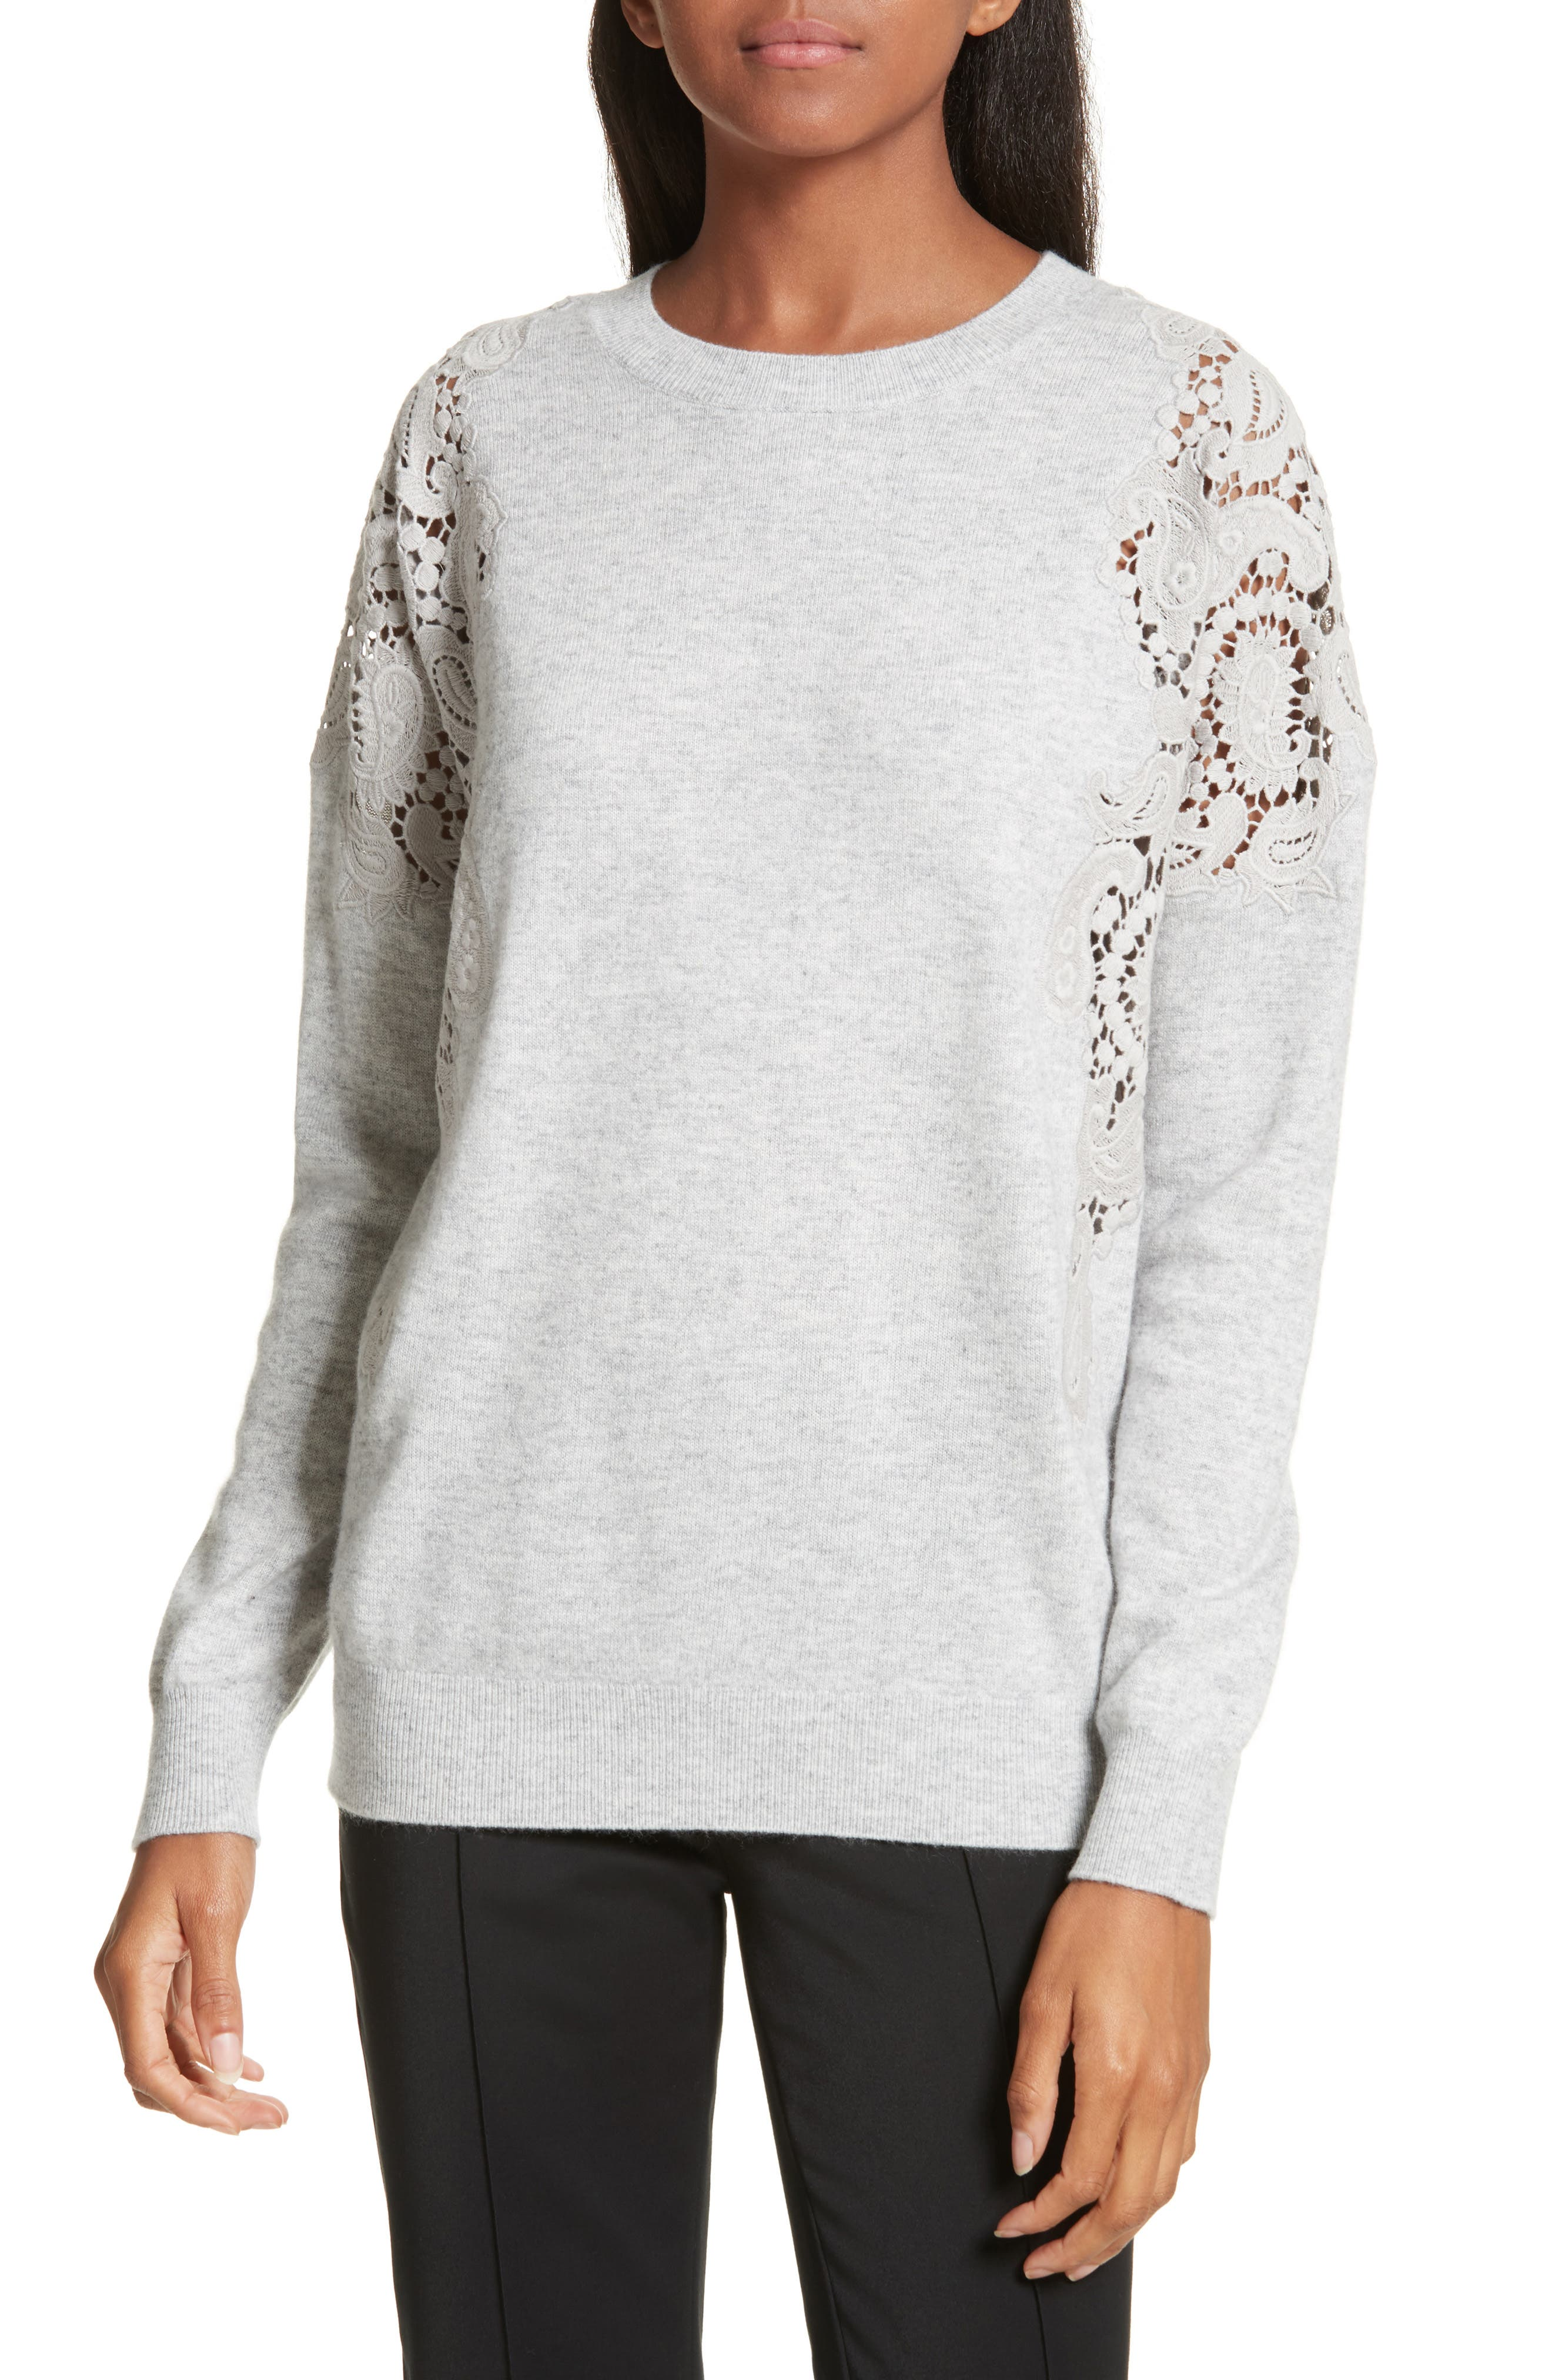 Alternate Image 1 Selected - Ted Baker London Tae Lace Shoulder Sweater